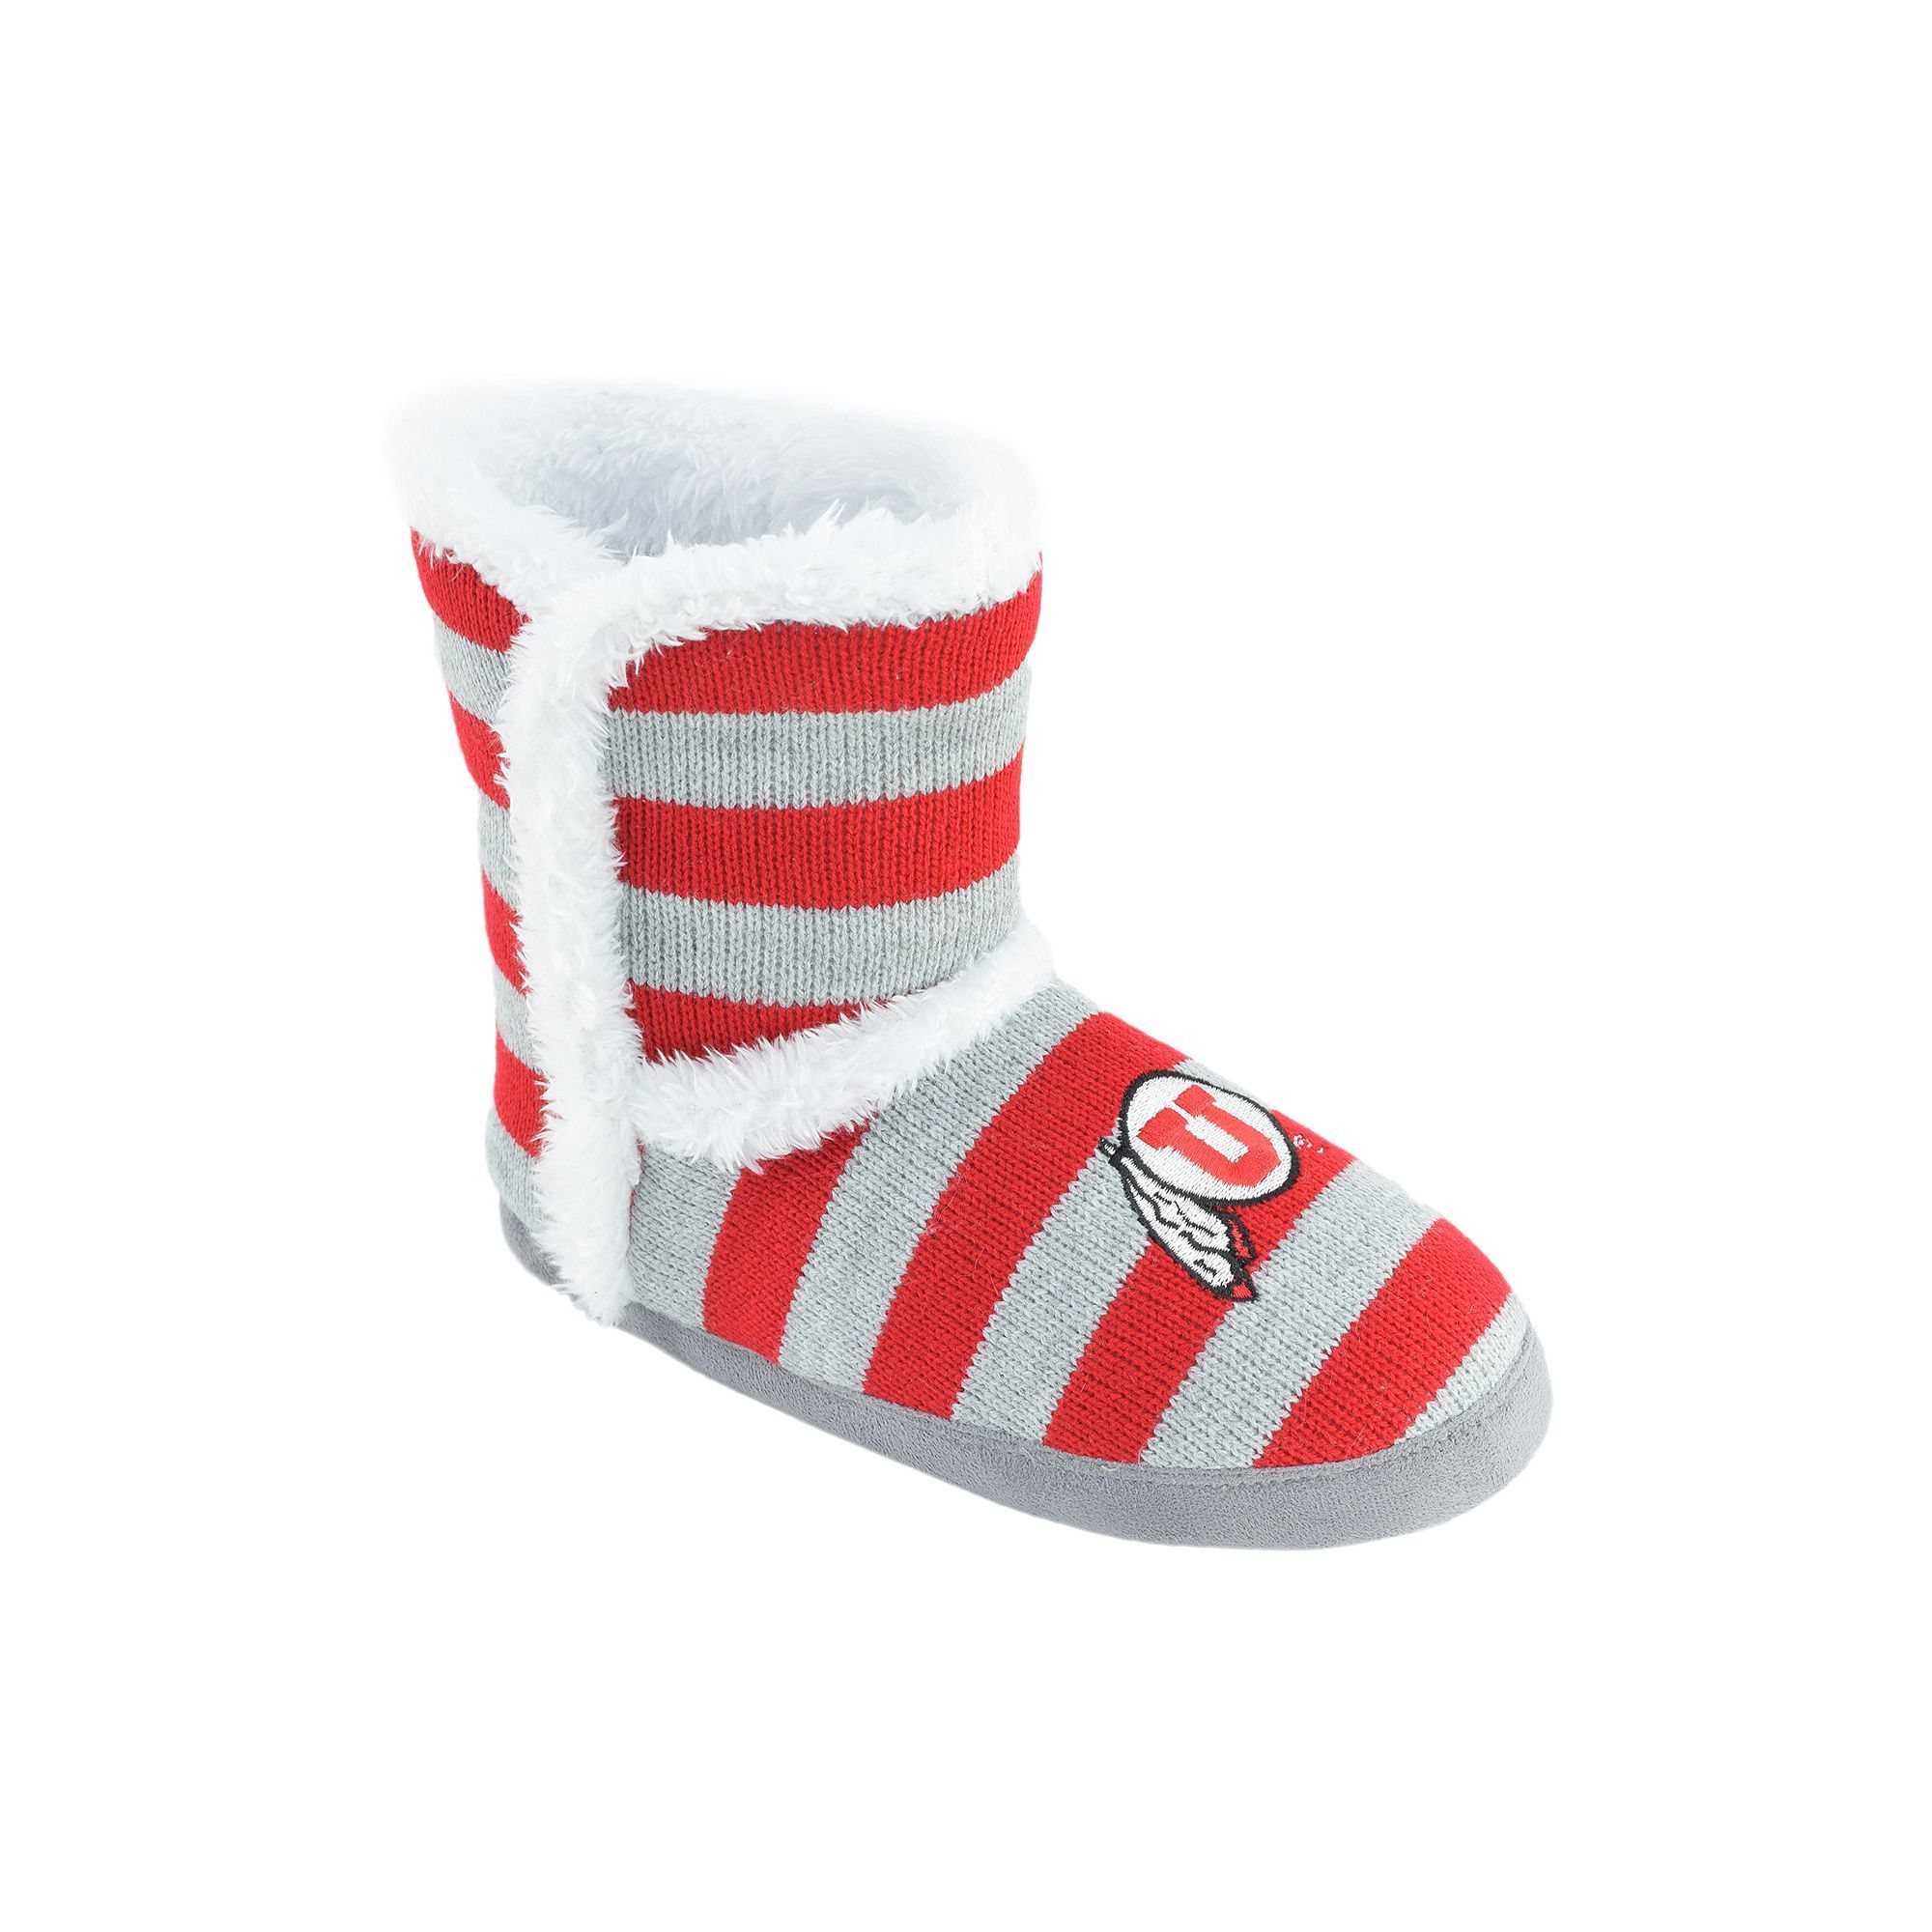 sale best seller amazon cheap online Women's Utah Utes Striped Boot ... Slippers comfortable cheap price cheap discount authentic pSmigJRN5